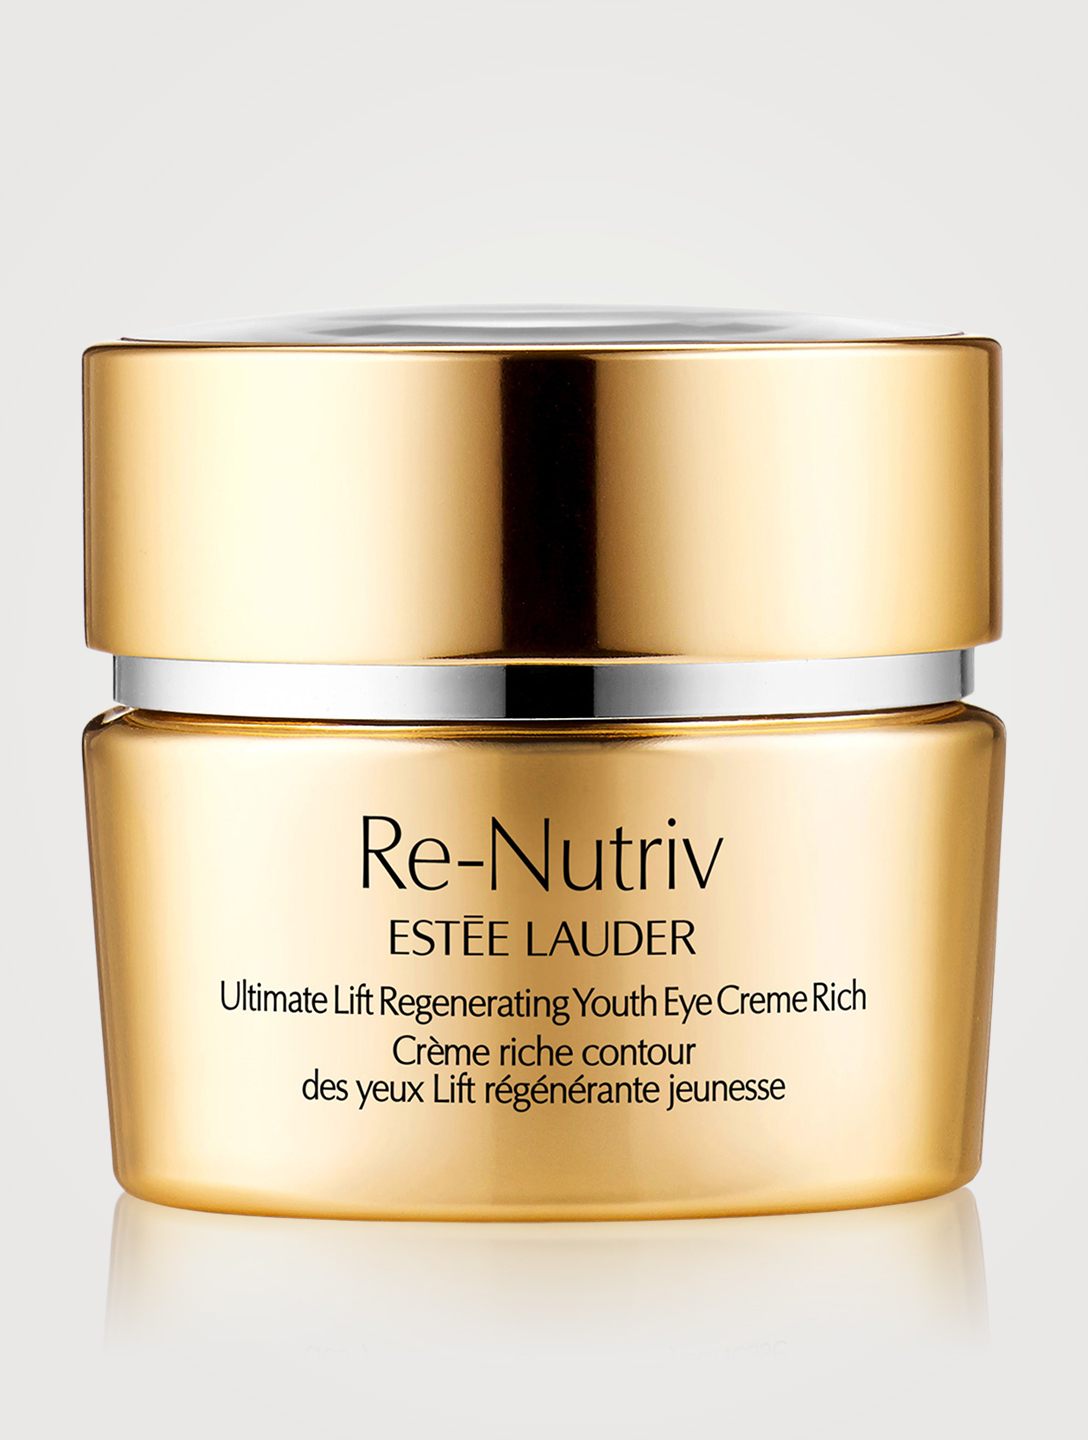 ESTÉE LAUDER RE-NUTRIV Ultimate Lift Regenerating Youth Eye Crème Rich Beauty